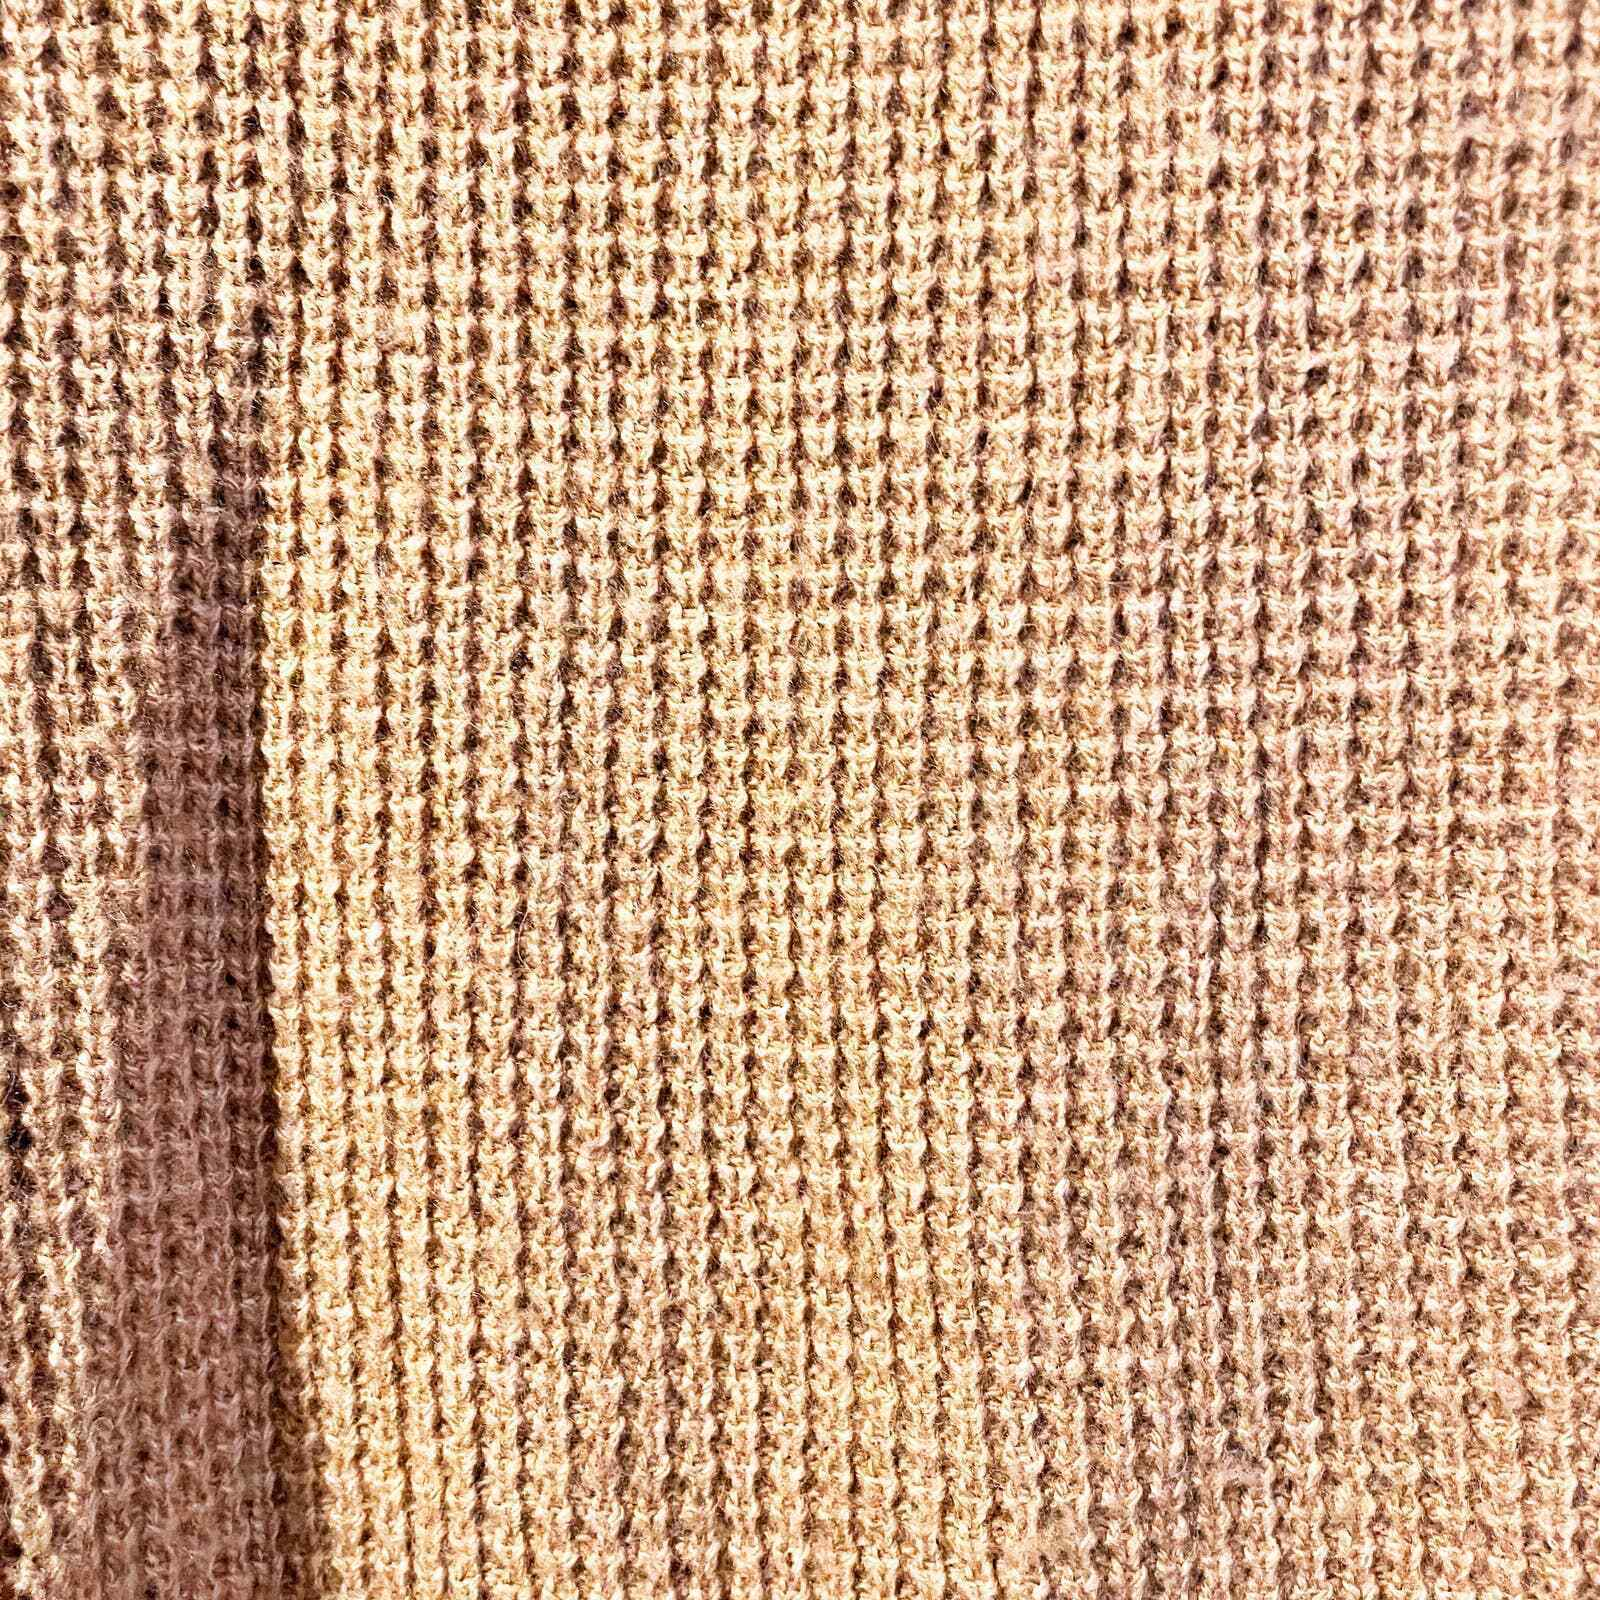 J.Crew Waffle Knit Textured Sweater Small - image 5